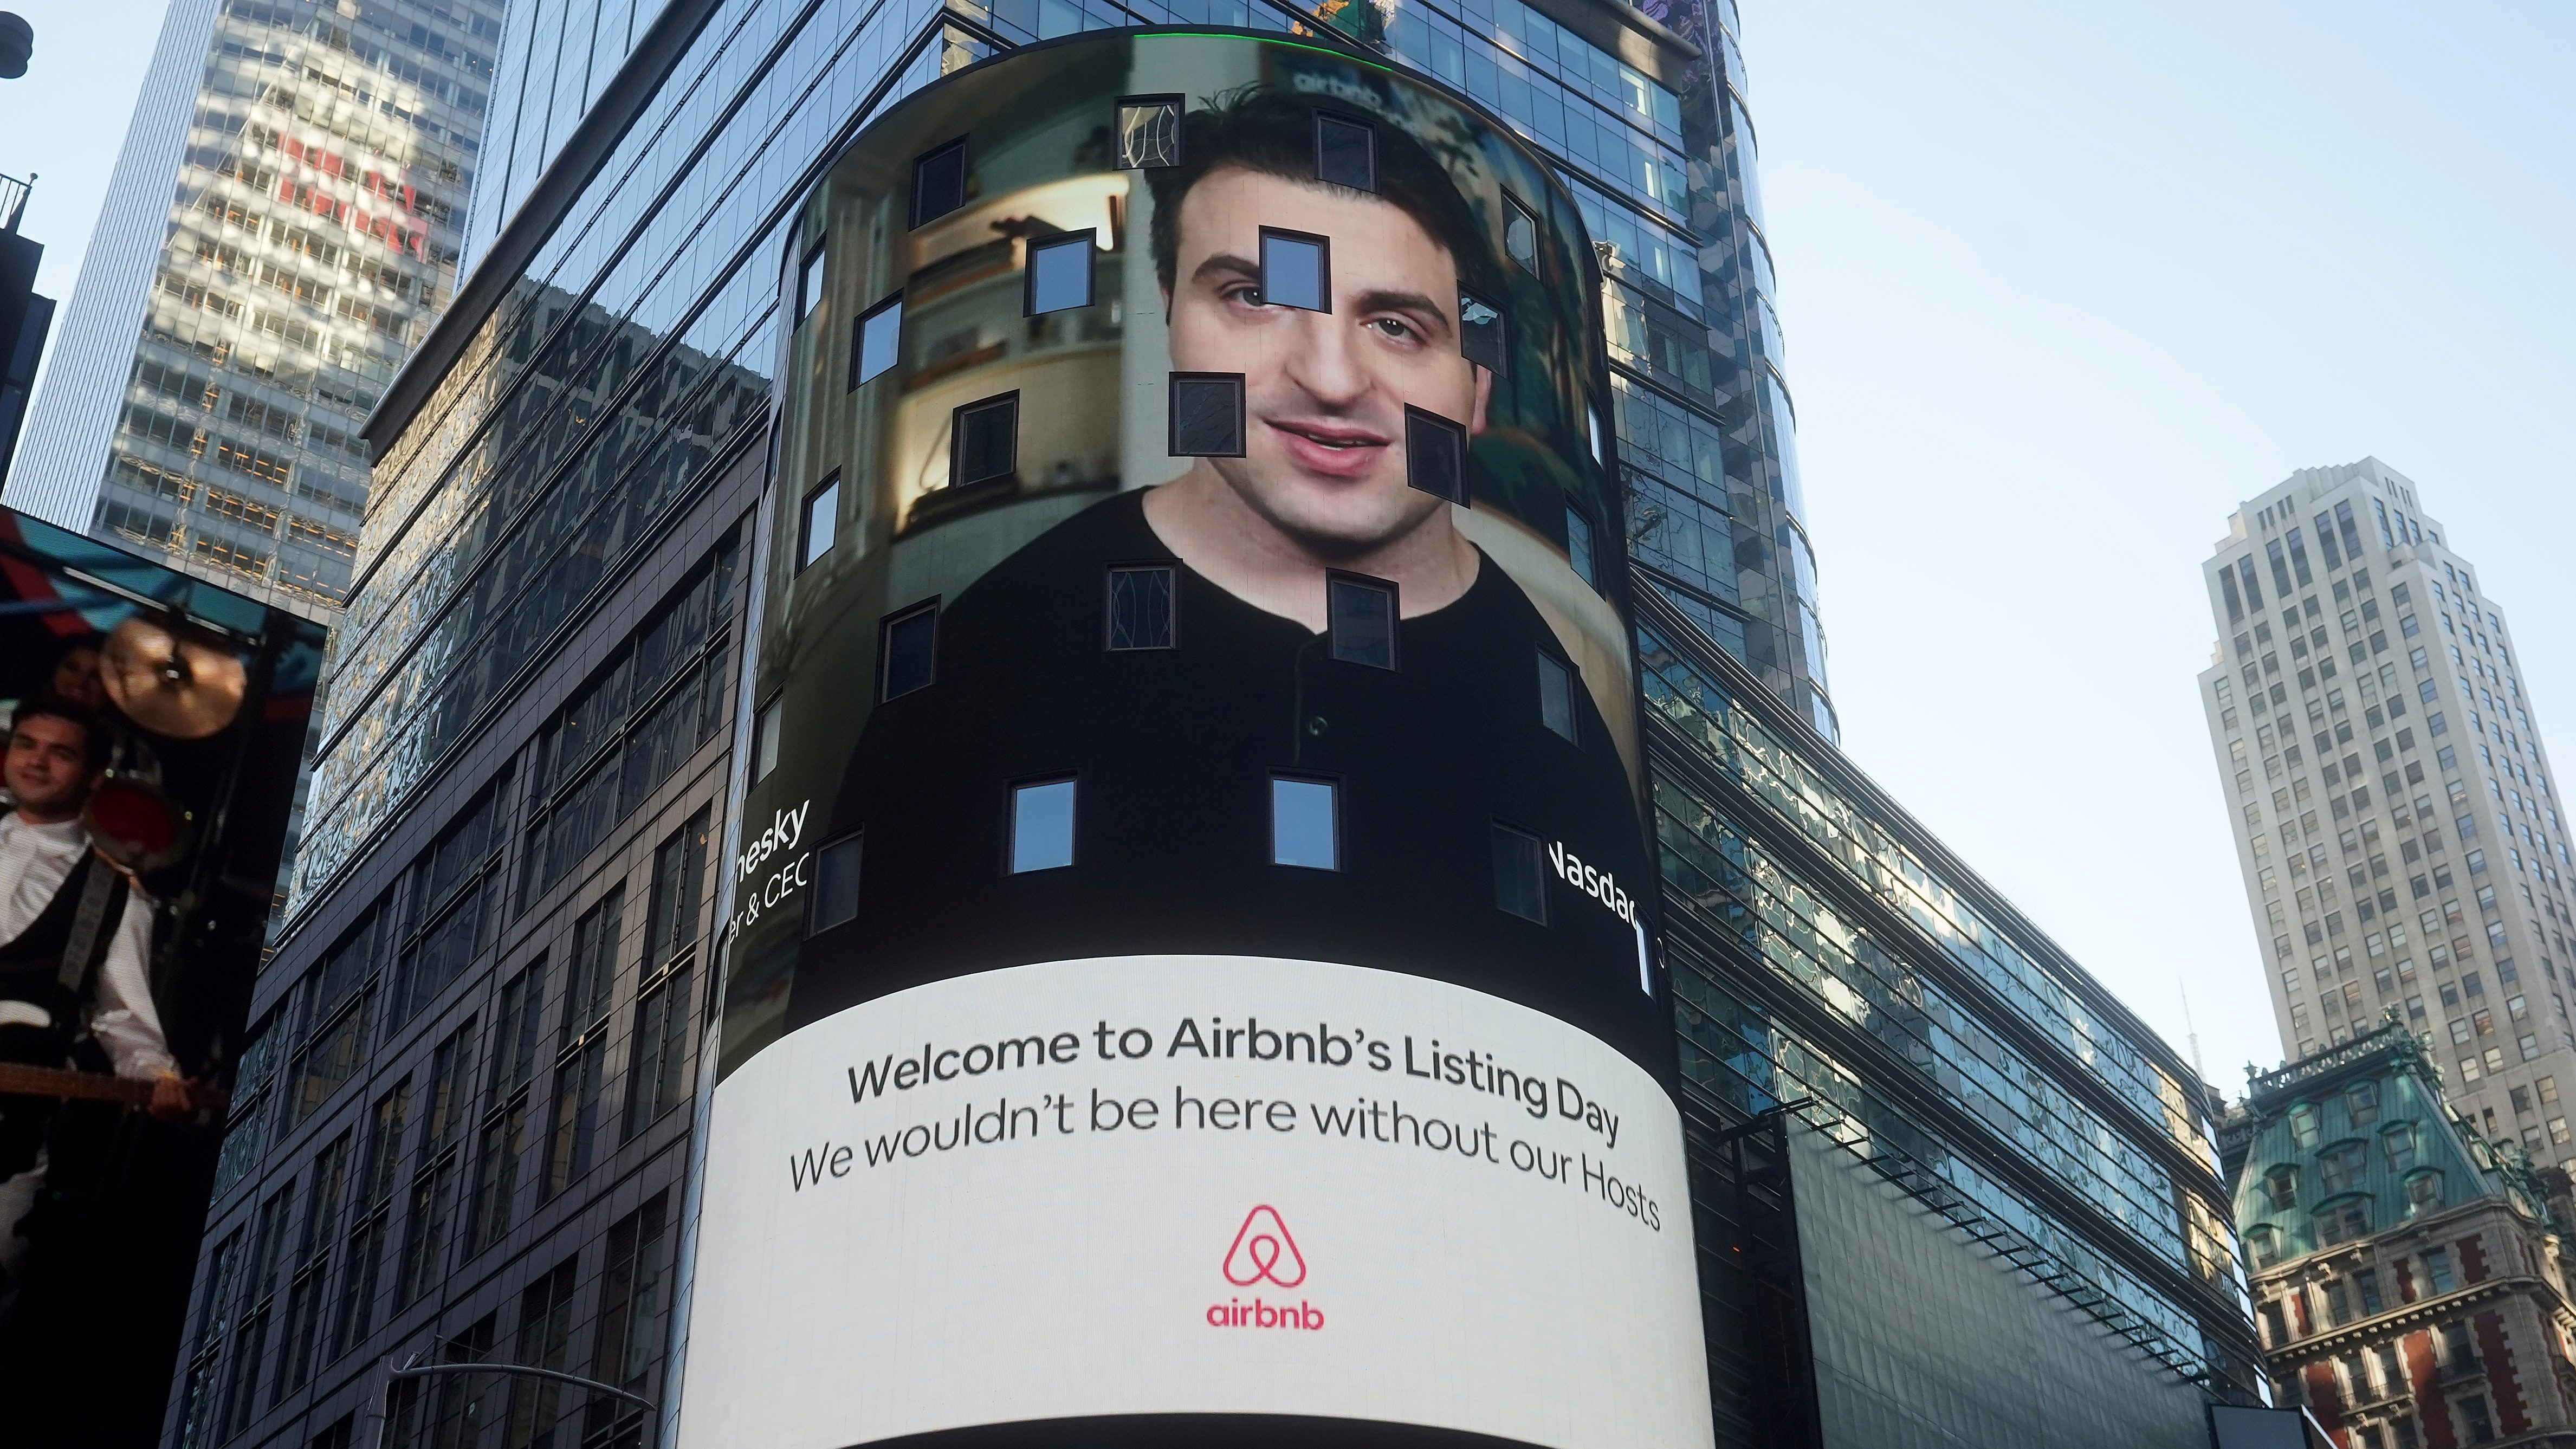 The NASDAQ market site displays an AirBnb sign featuring CEO Brian Chesky on their billboard on the day of their IPO in Times Square in the Manhattan borough of New York City, New York, U.S., December 10, 2020.